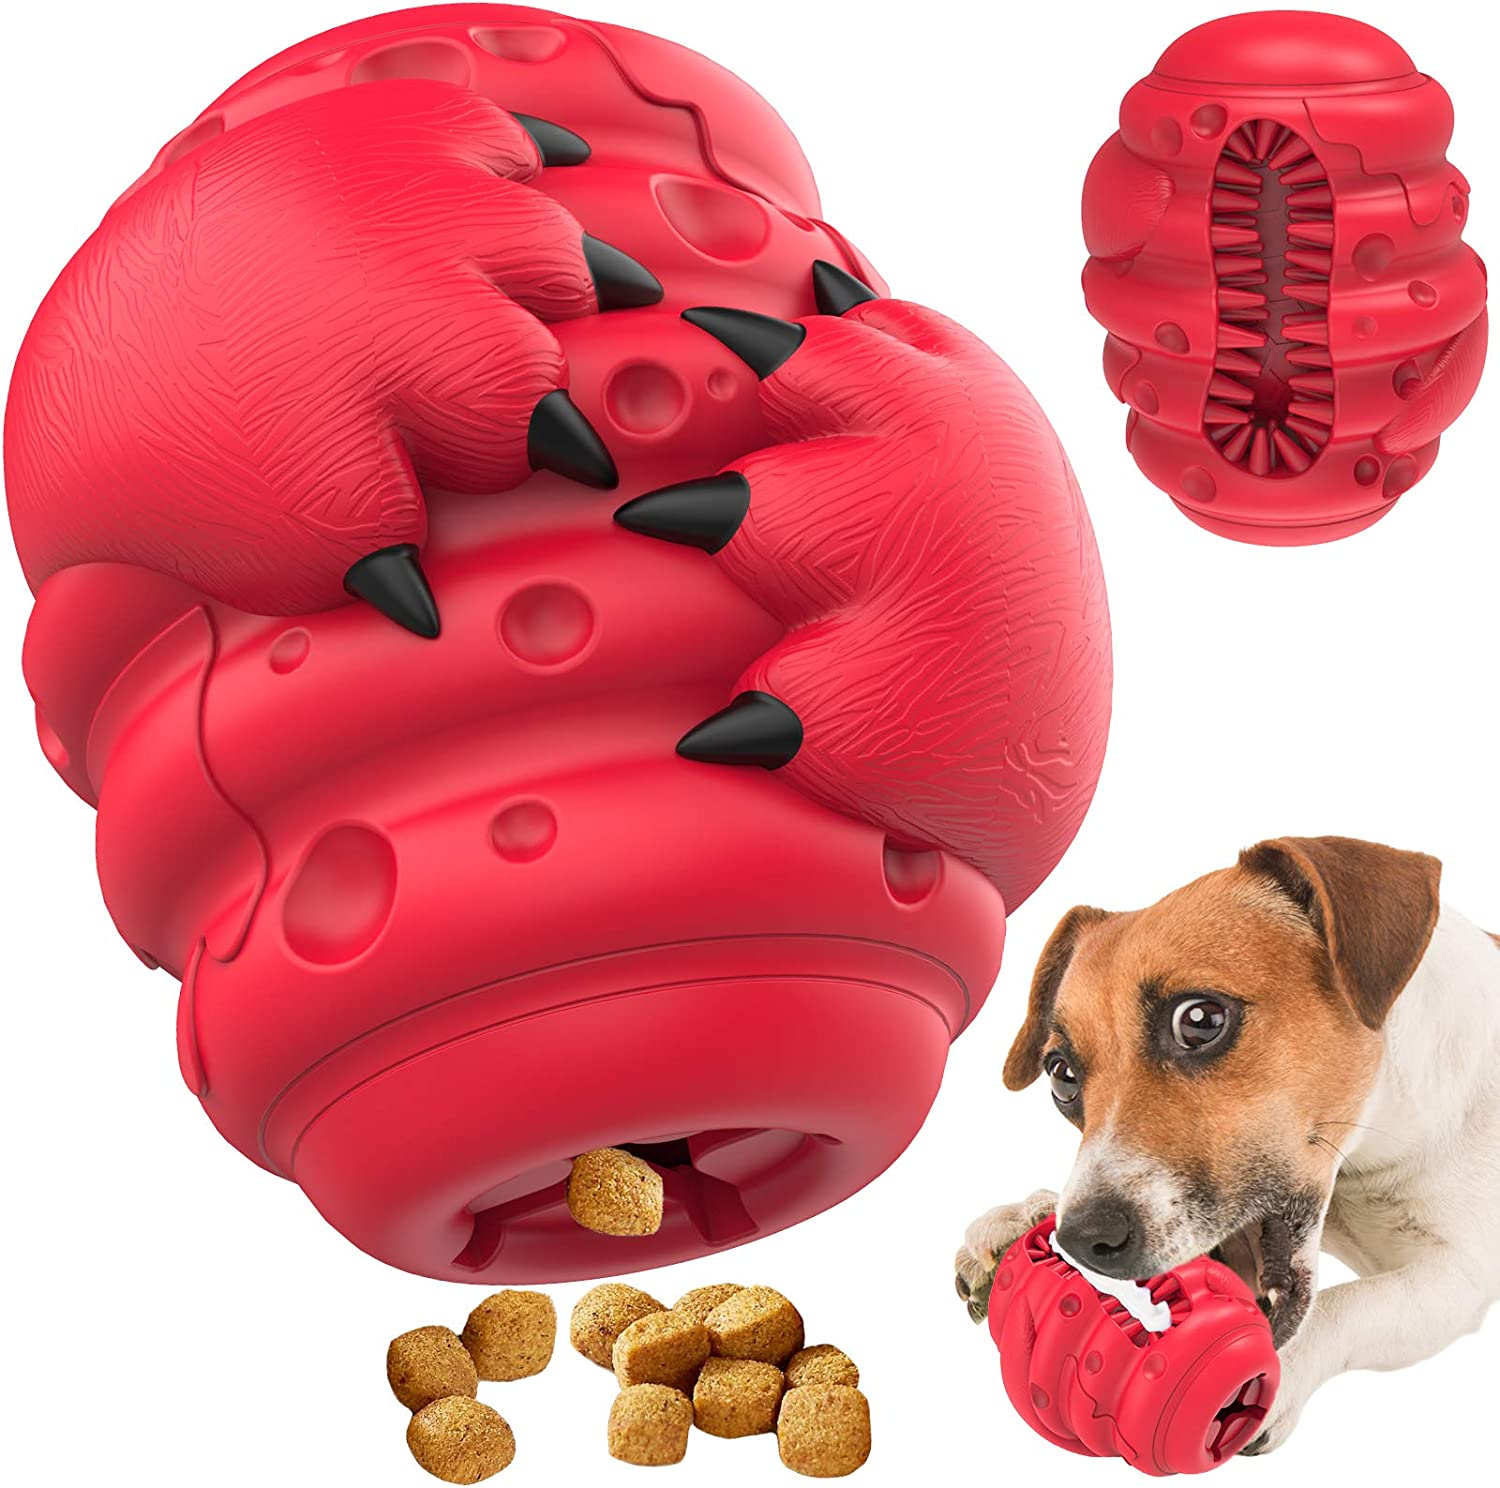 Dog Chew Toy for Aggressive Chewers Medium Large Breed Dogs, Indestructible Ultra Tough Slow Feeder Dog Food Dispenser, 100% Safe Natural Rubber